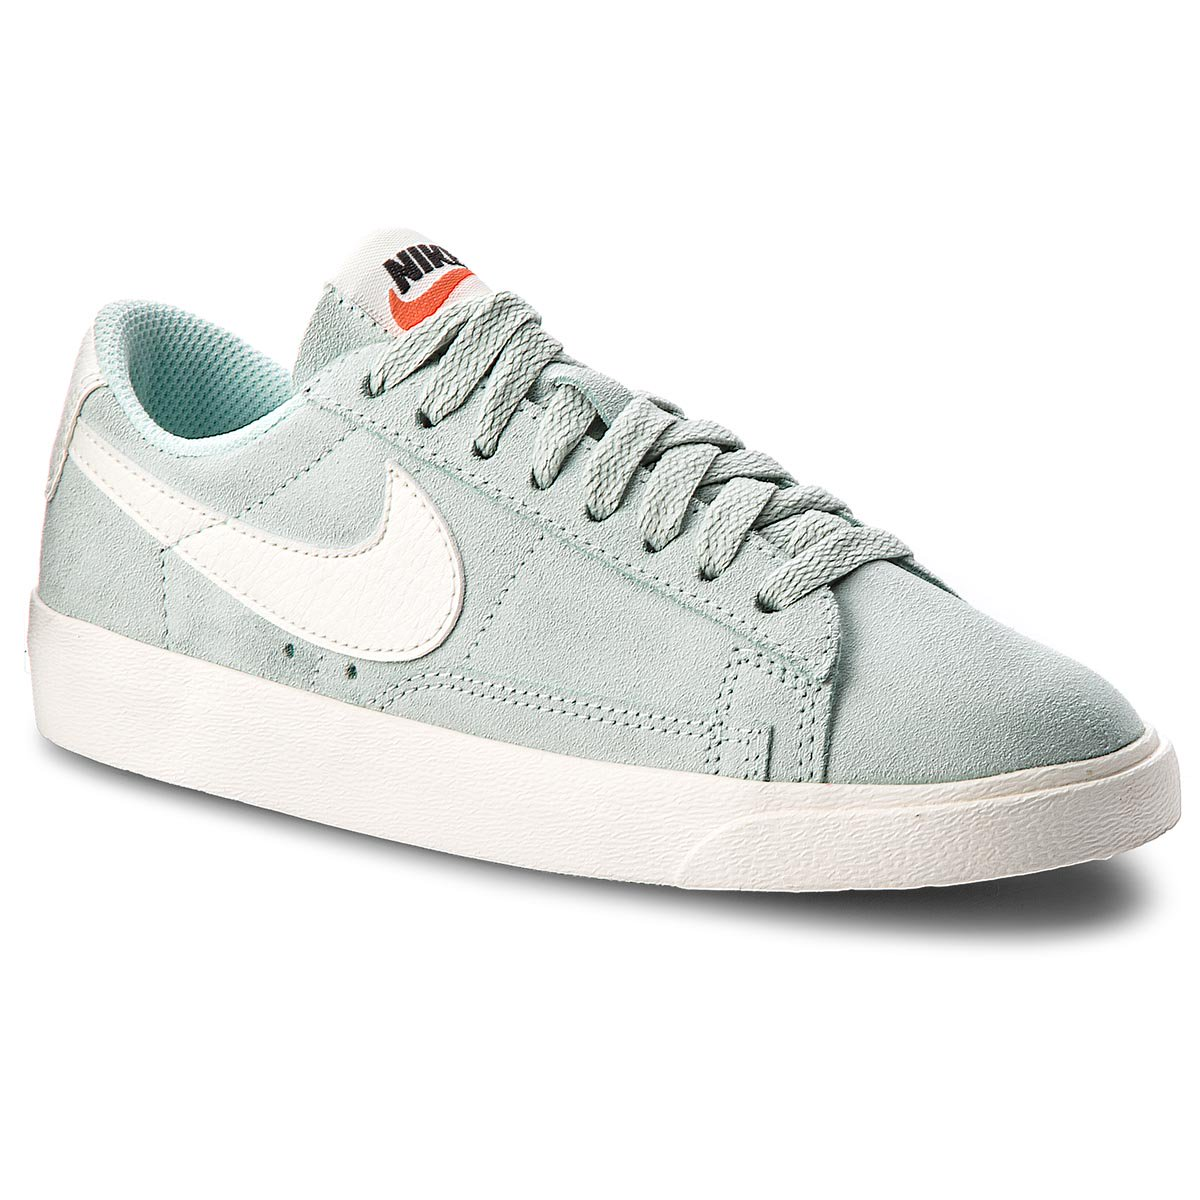 Buty NIKE – Blazer Low Sd AA3962 301 Igloo/Sail/Sail